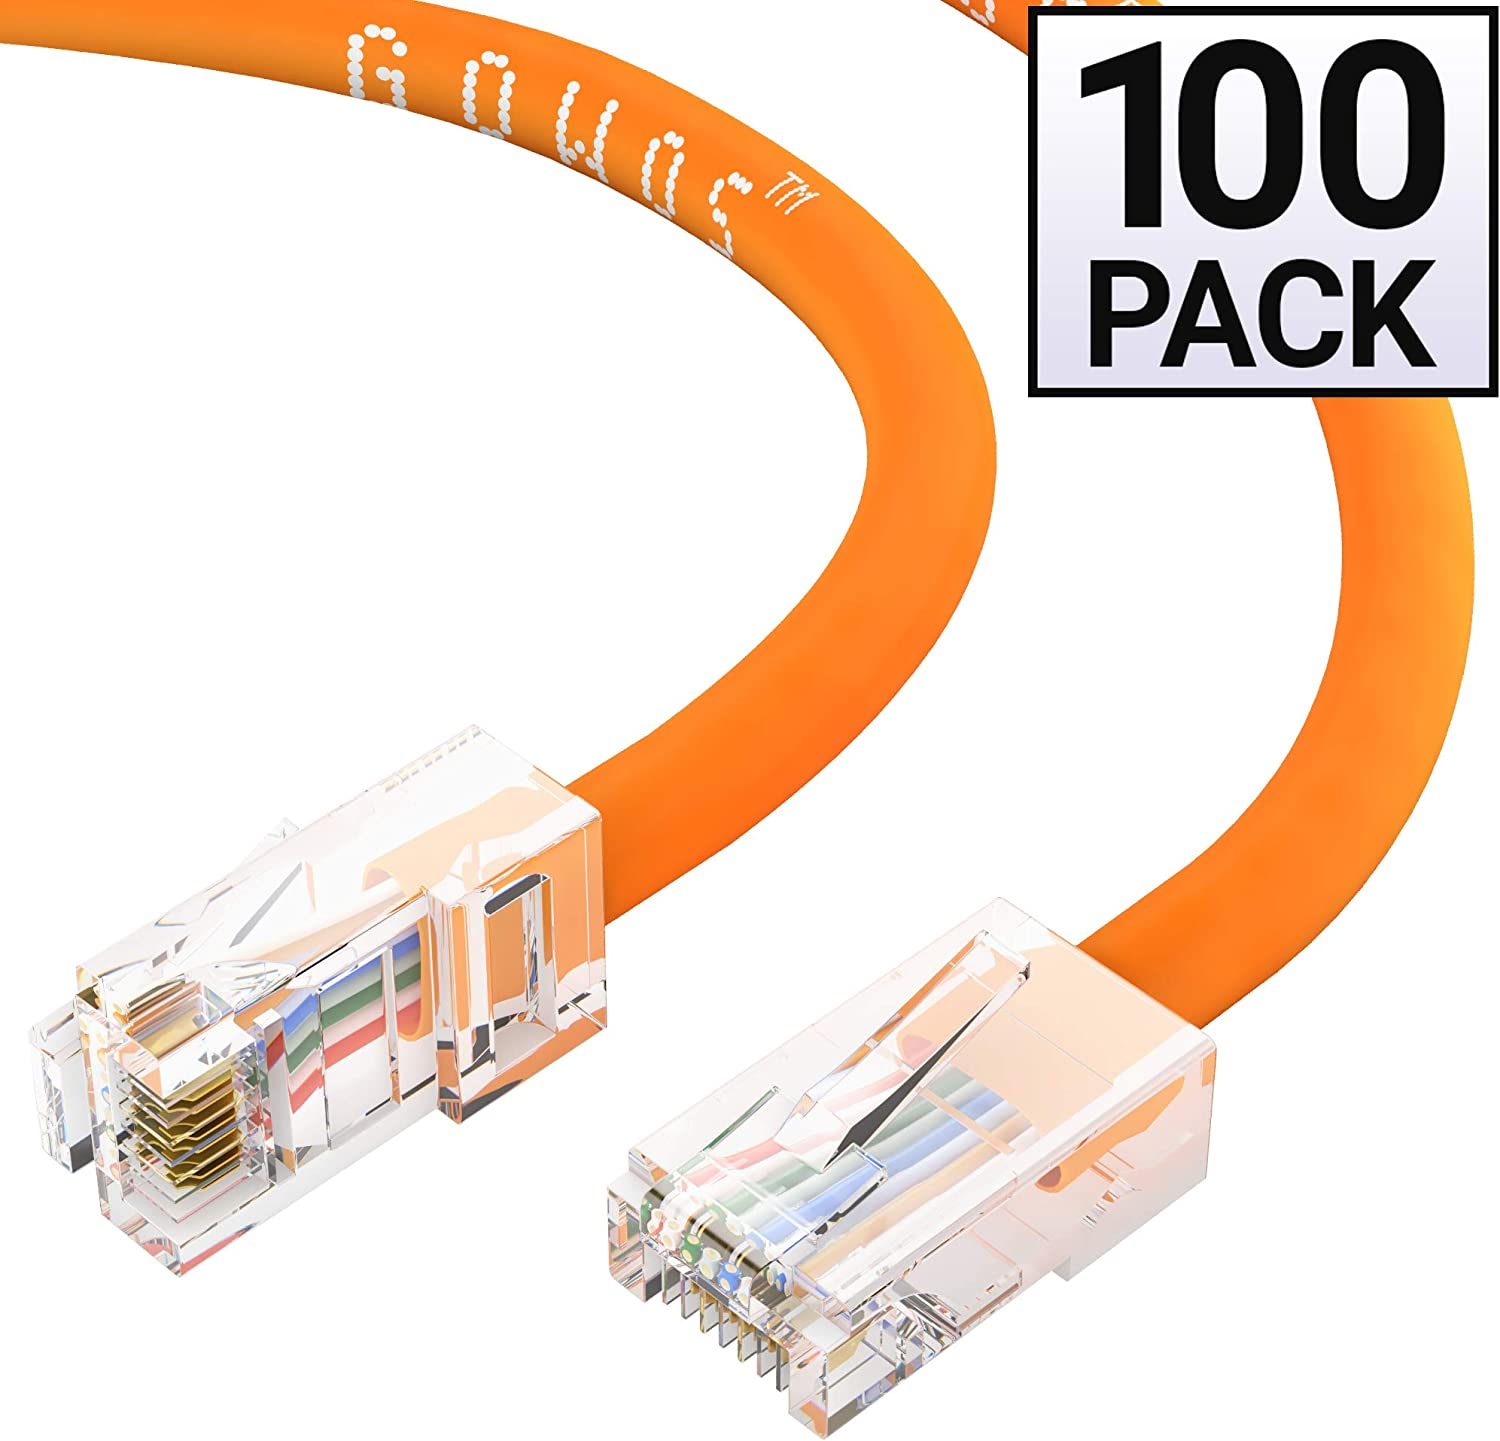 GOWOS Cat5e Ethernet Cable 350MHz 24AWG Network Cable with Gold Plated RJ45 Non-Booted Connector 1Gigabit//Sec High Speed LAN Internet//Patch Cable 40 Feet - Orange